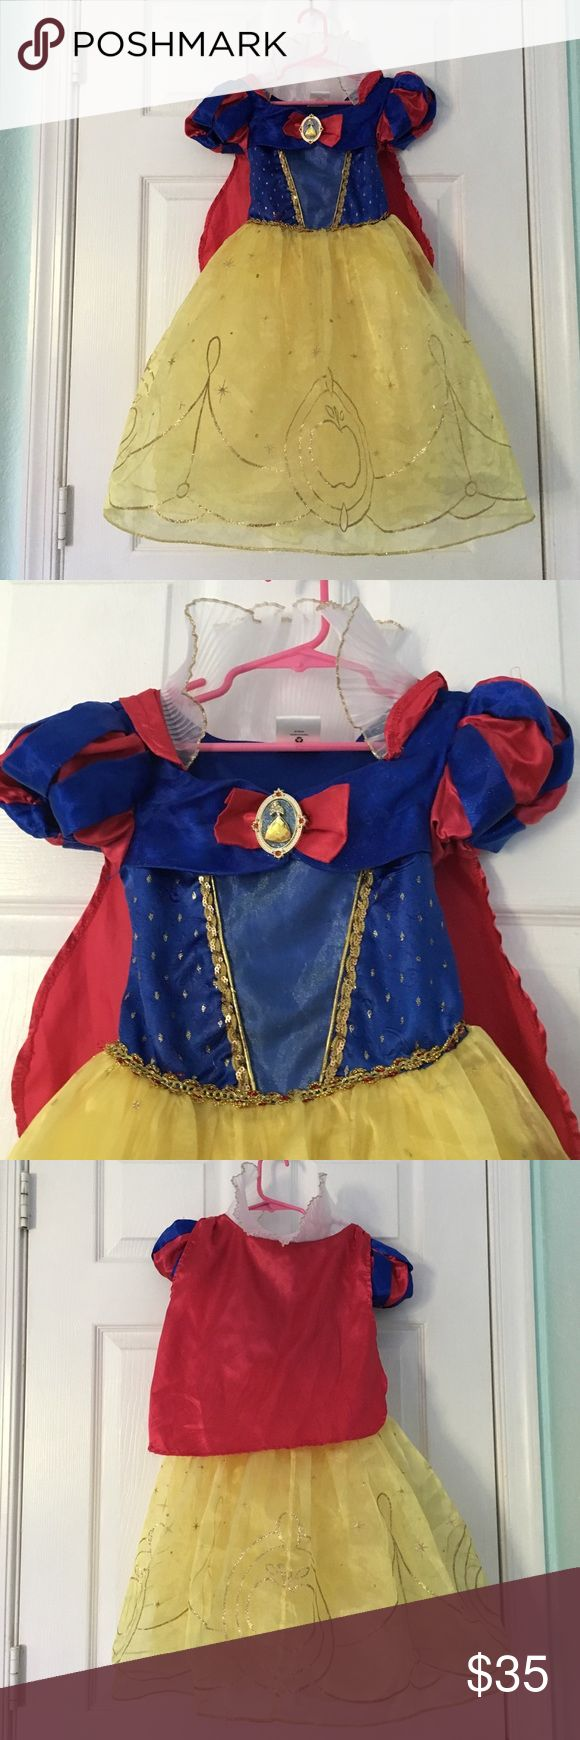 Snow White with cape Disney Store costume This is an authentic Disney Store Snow White costume with red cape. Great condition! Disney Costumes Halloween